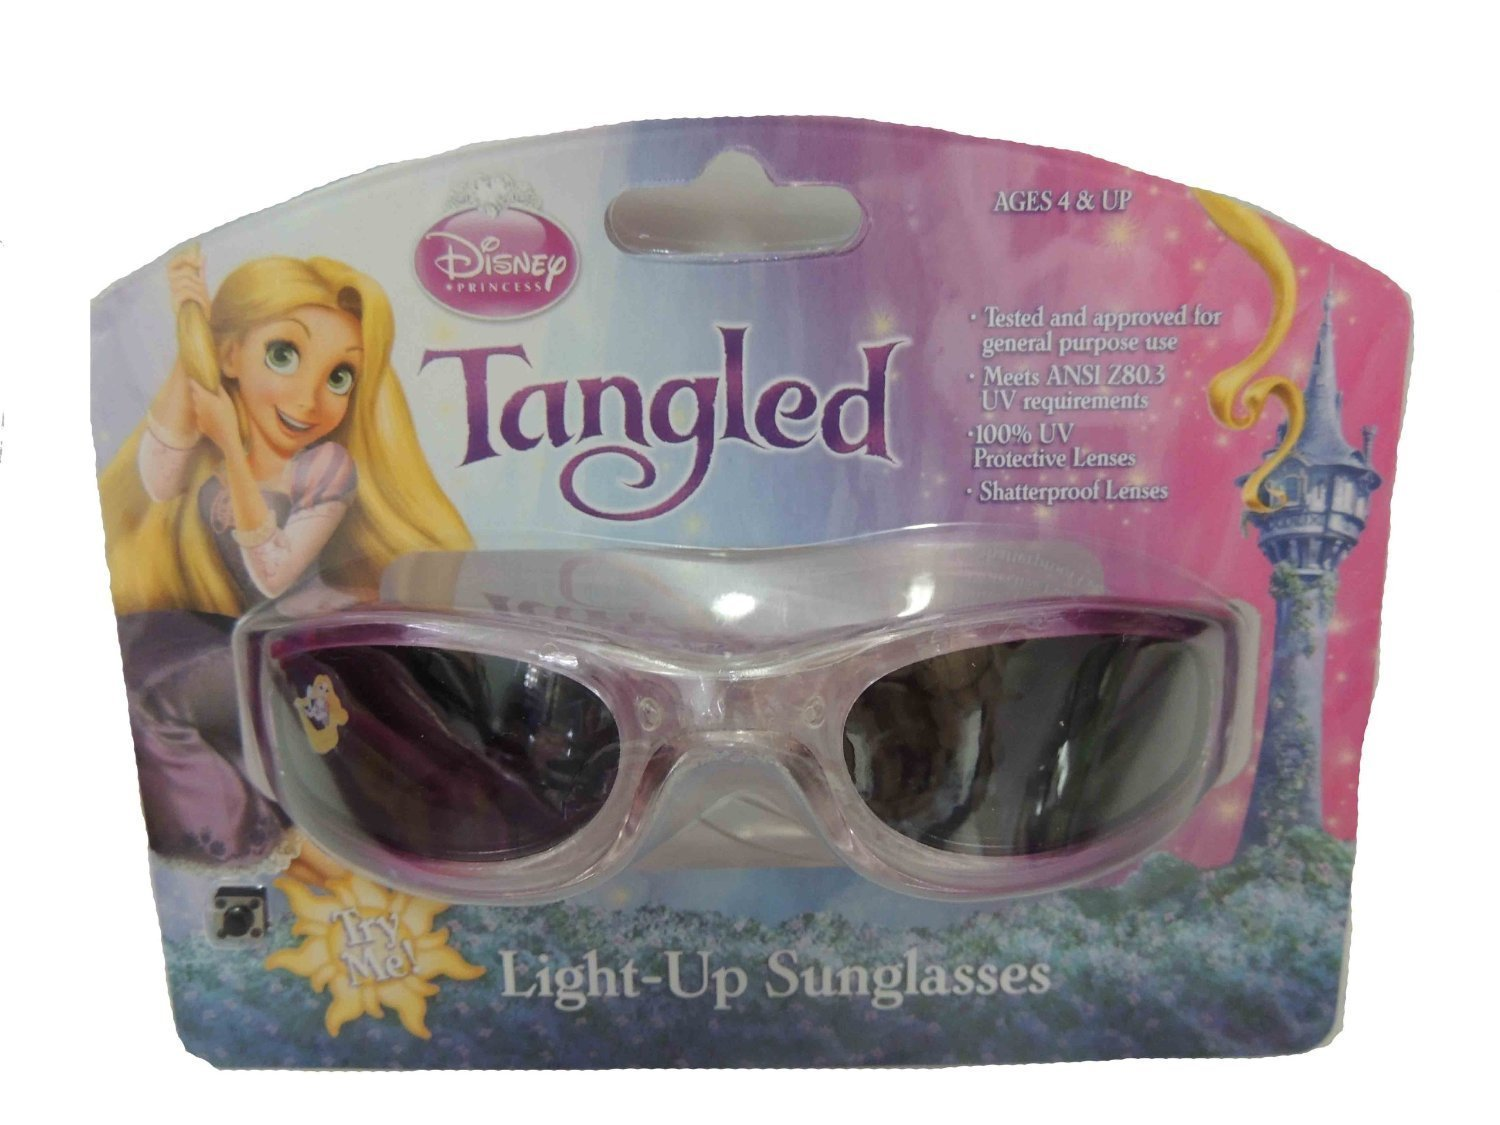 Disney Tangled Light-Up Sunglasses